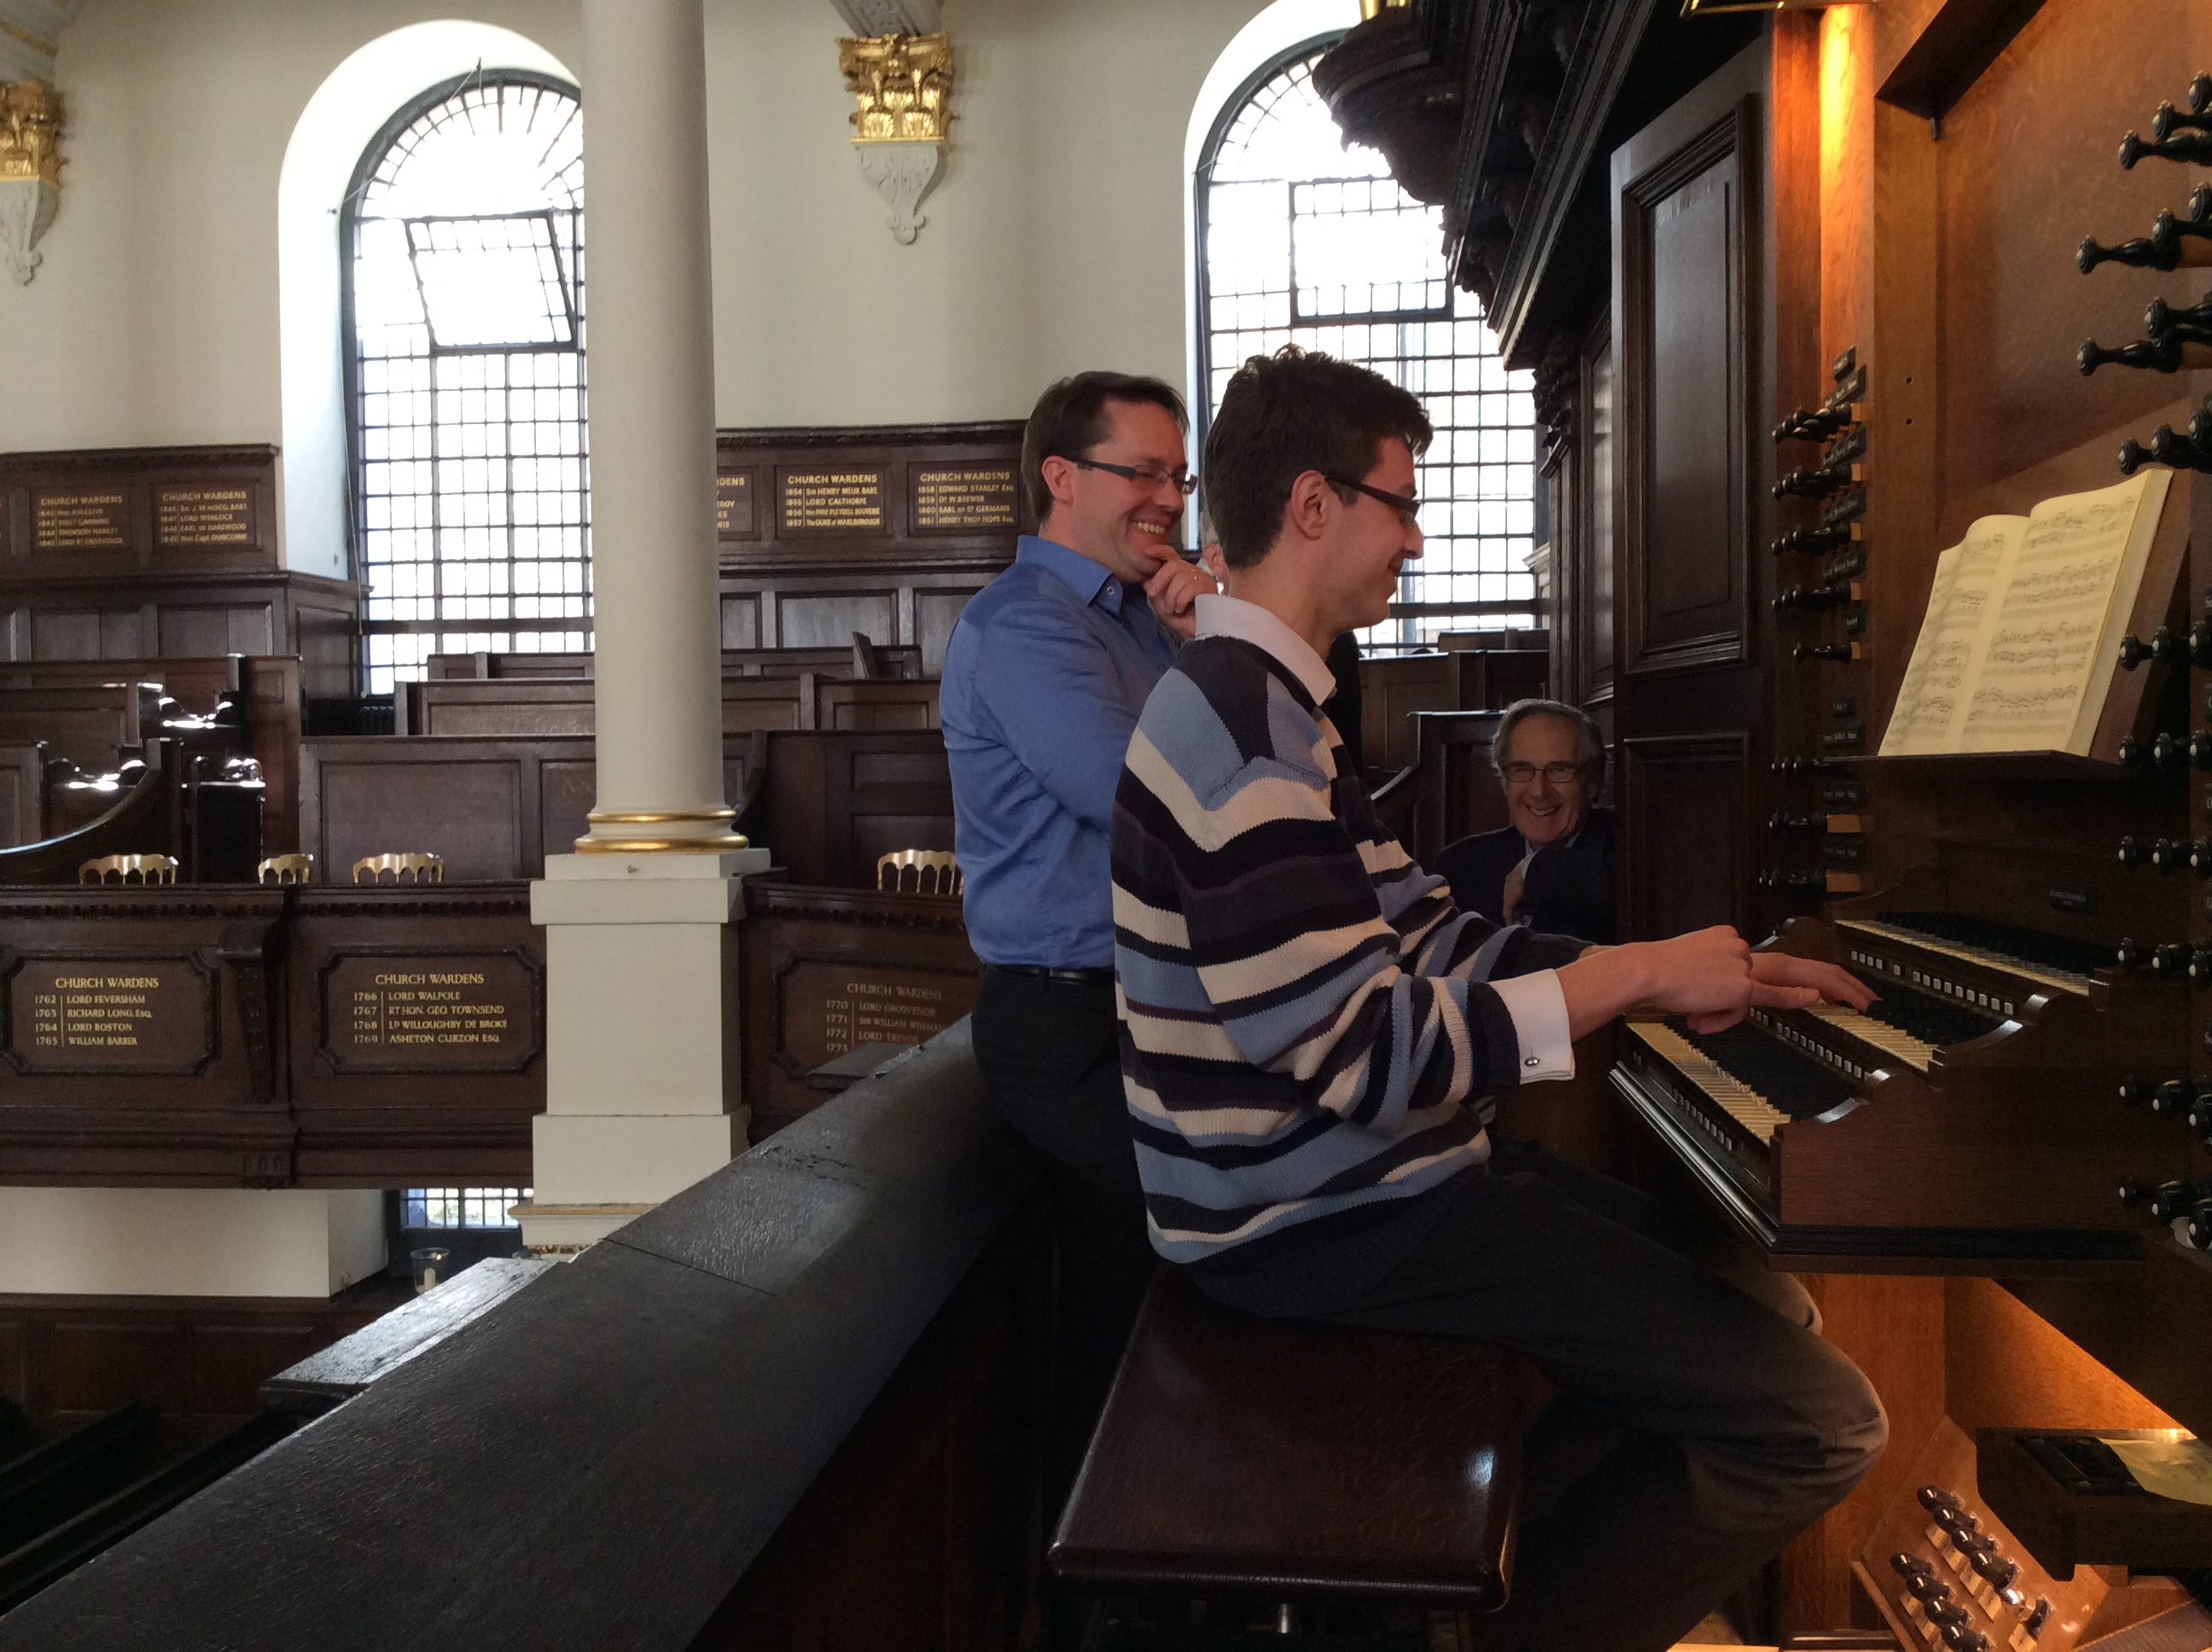 Image: Ashley Wagner at the organ with Robin Walker and Peter St John Stokes